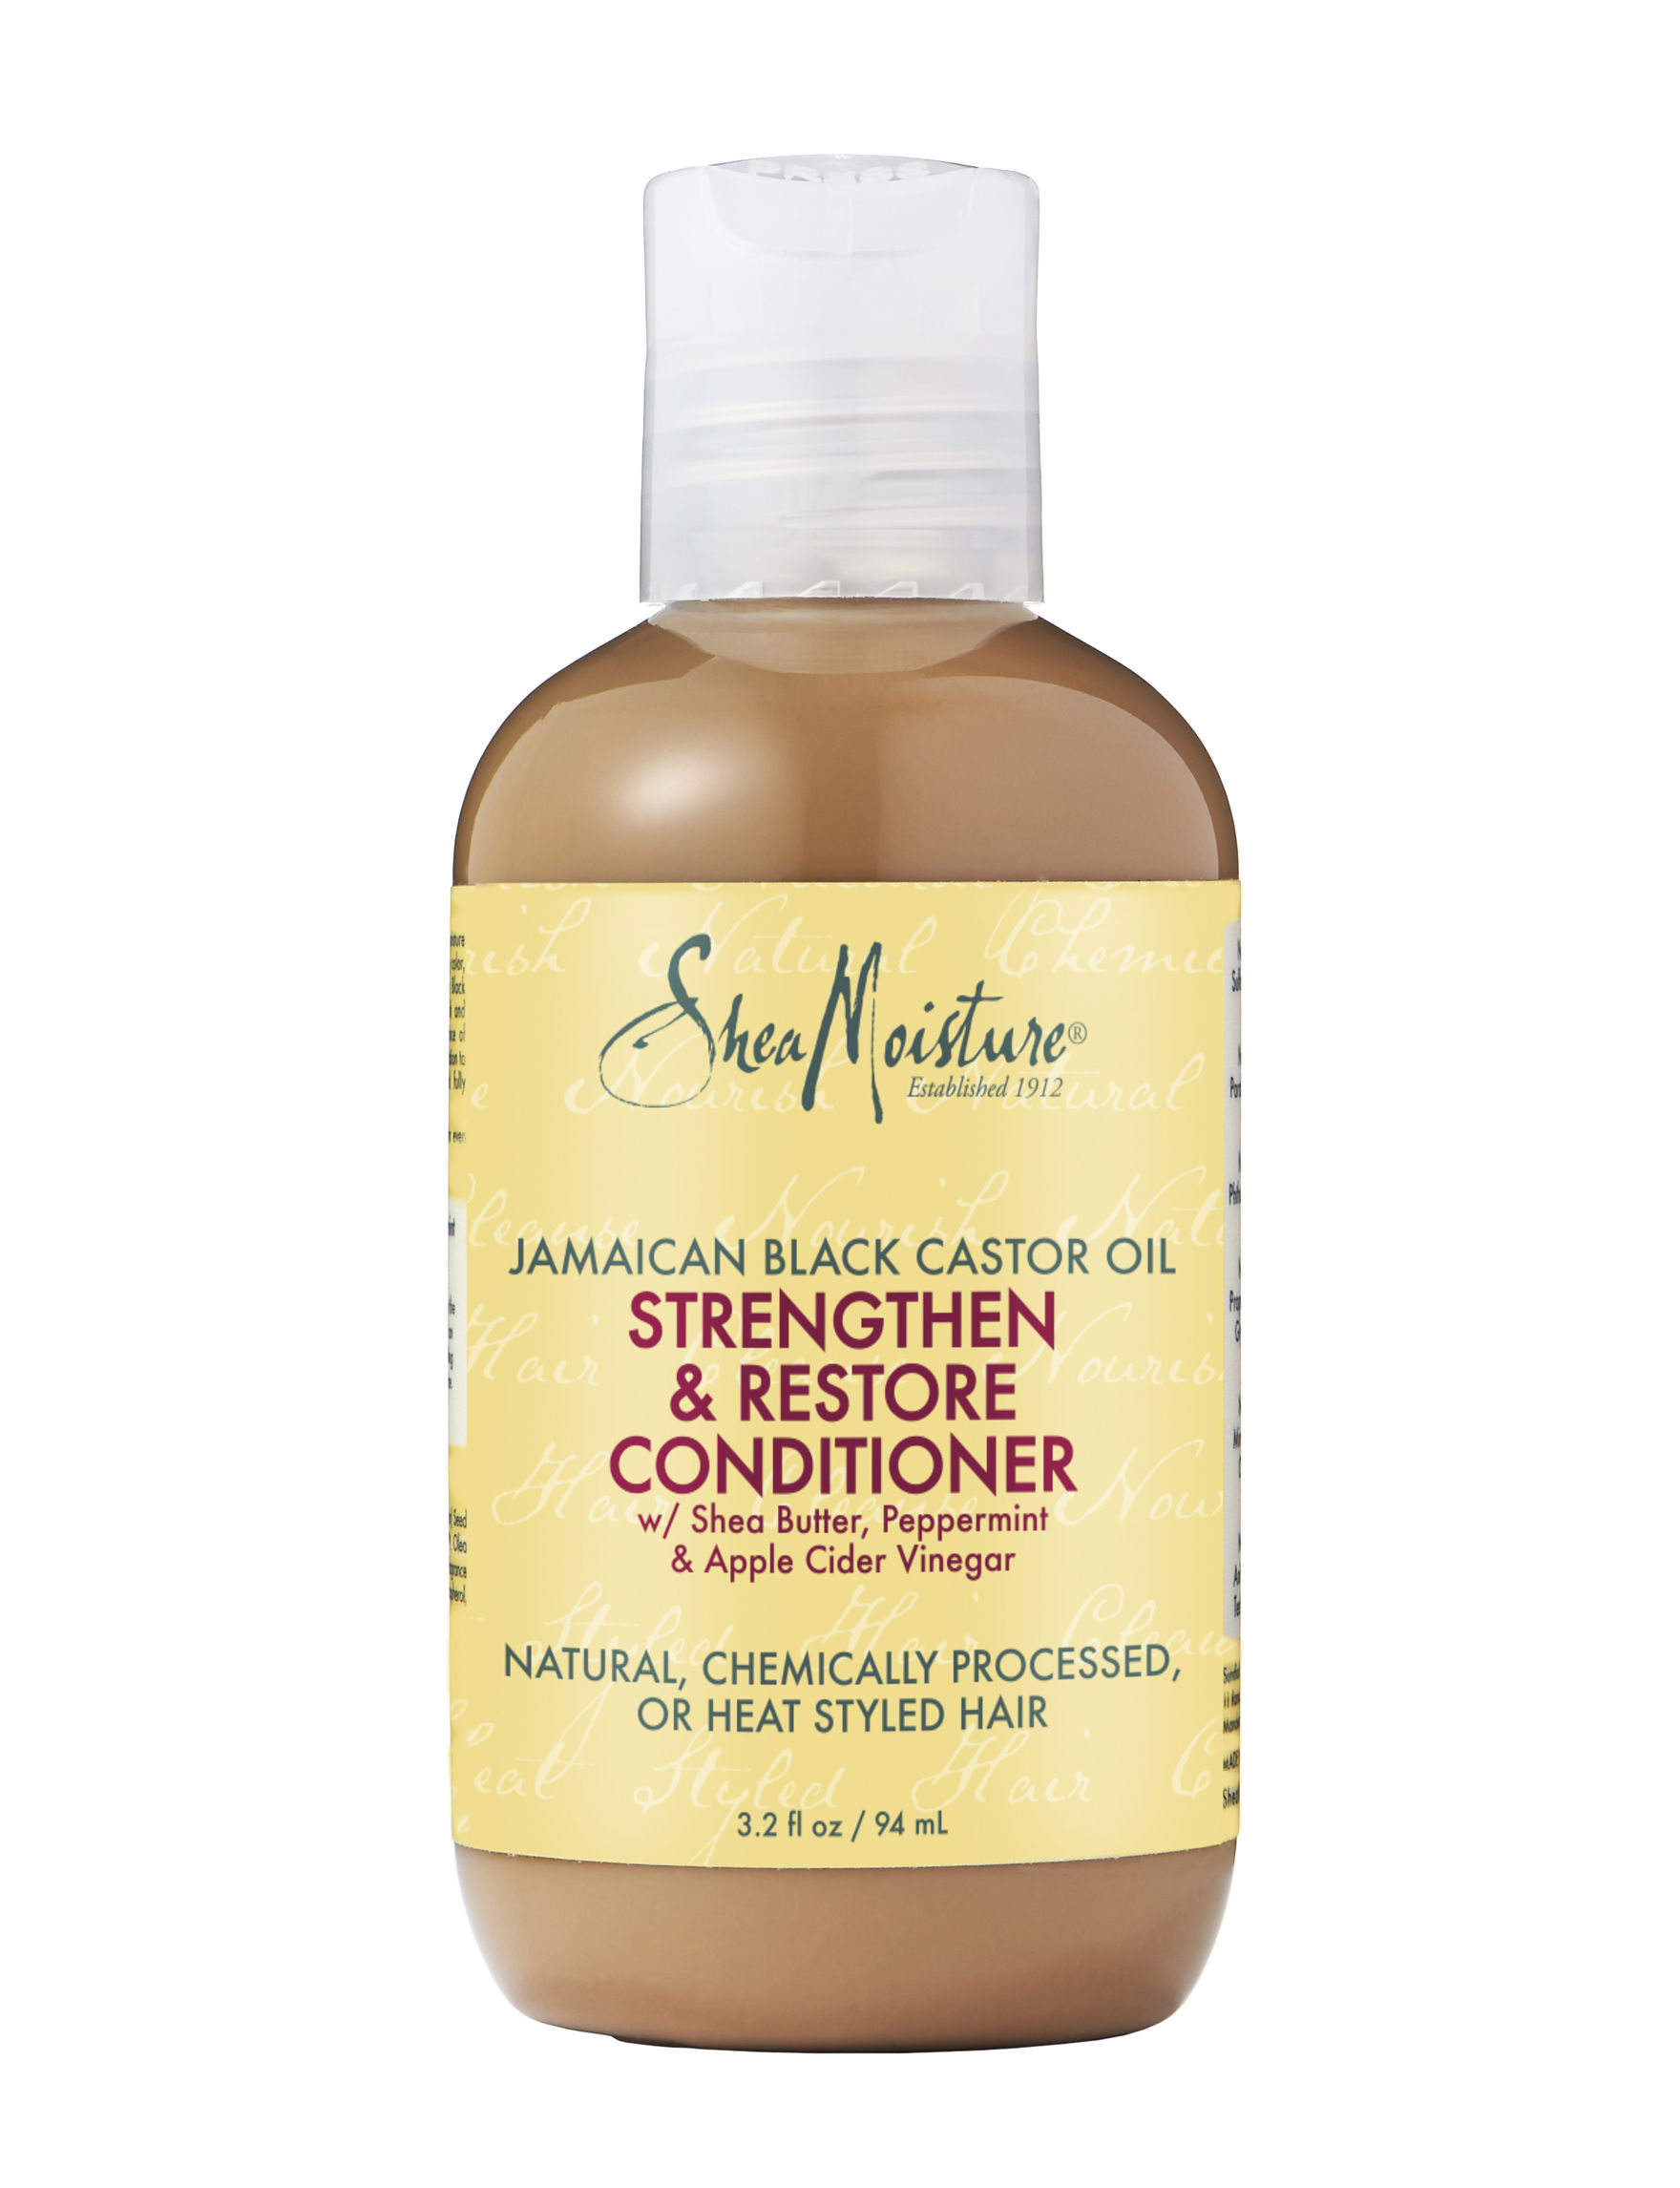 Shea Moisture  Hairstyling Products